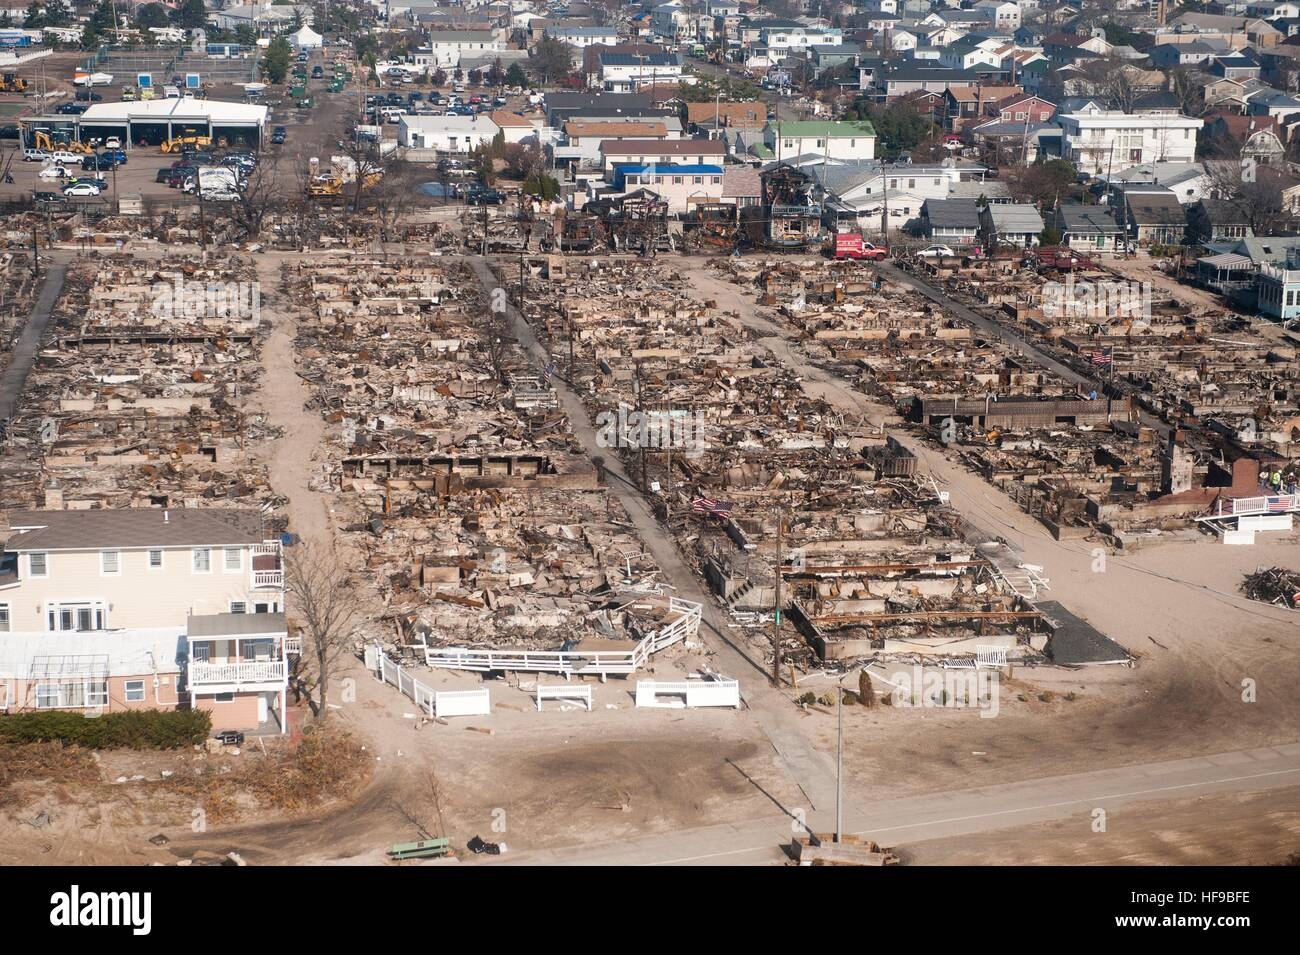 An aerial view of the destruction along the northern U.S. coastline after Hurricane Sandy November 12, 2012 in Breezy - Stock Image